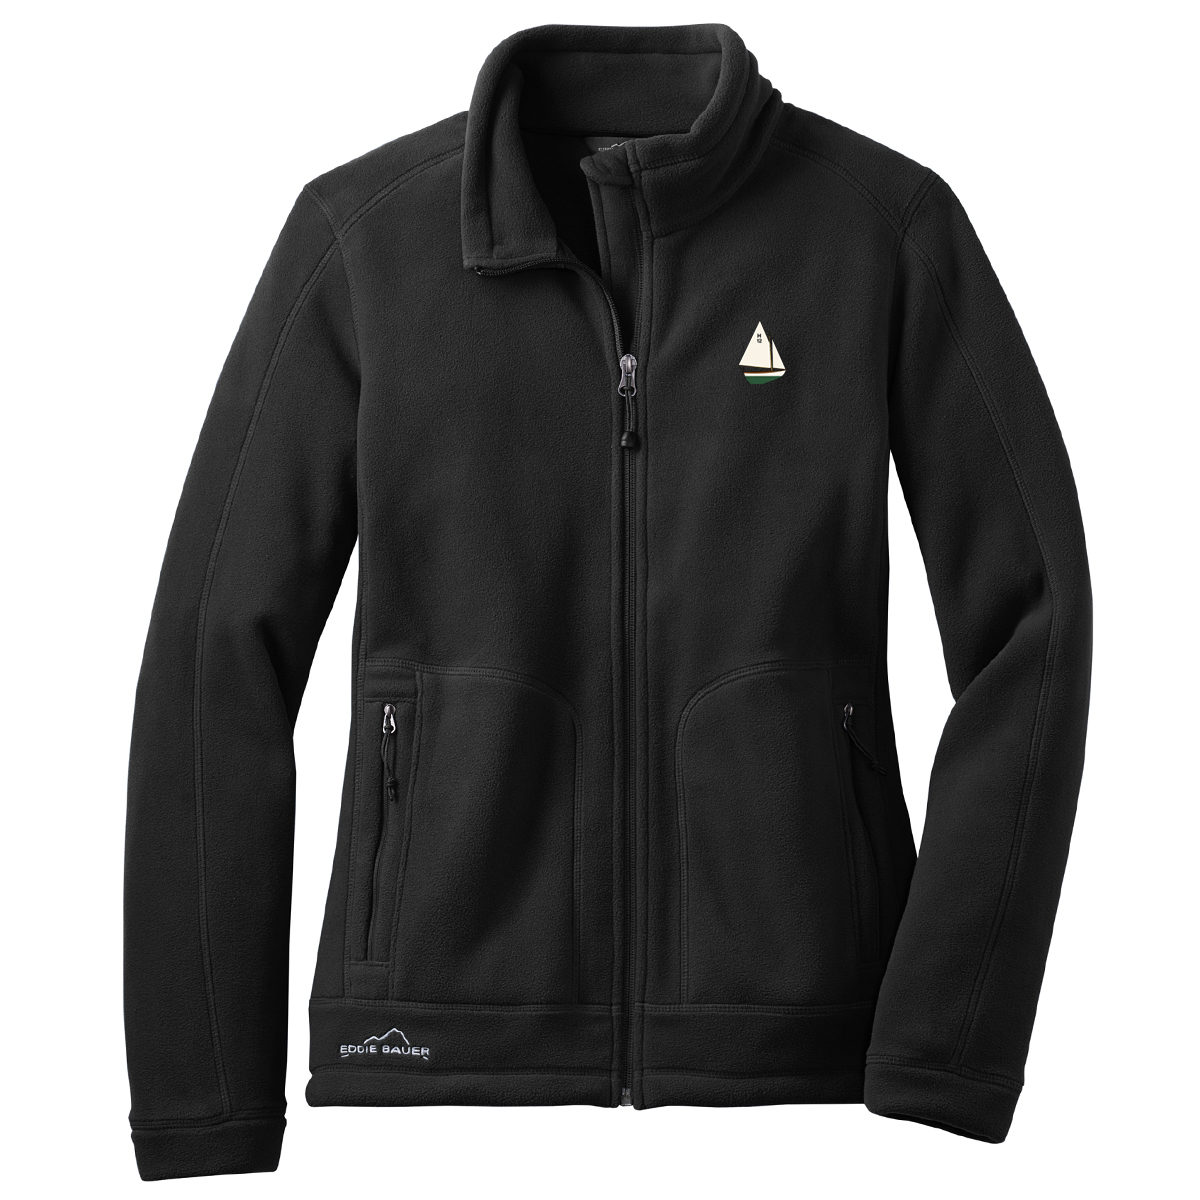 H-Class - Women's Eddie Bauer Fleece Jacket